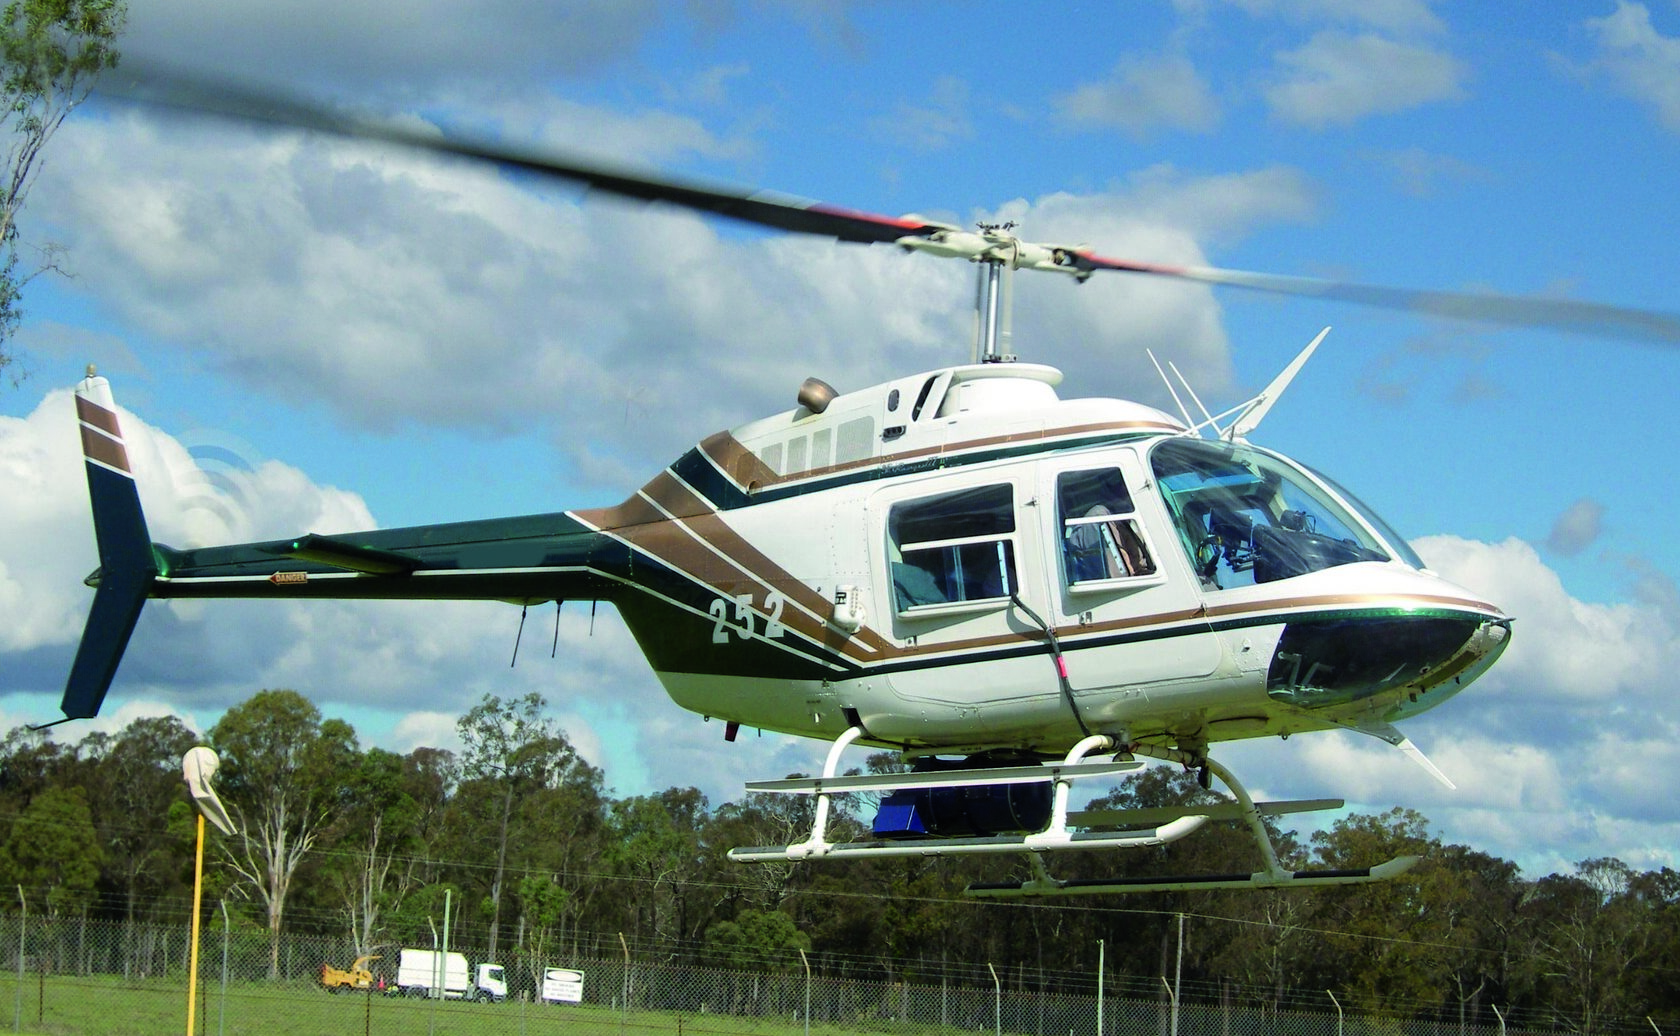 Figure 1. Helicopter-mounted gas detection system (GLD).